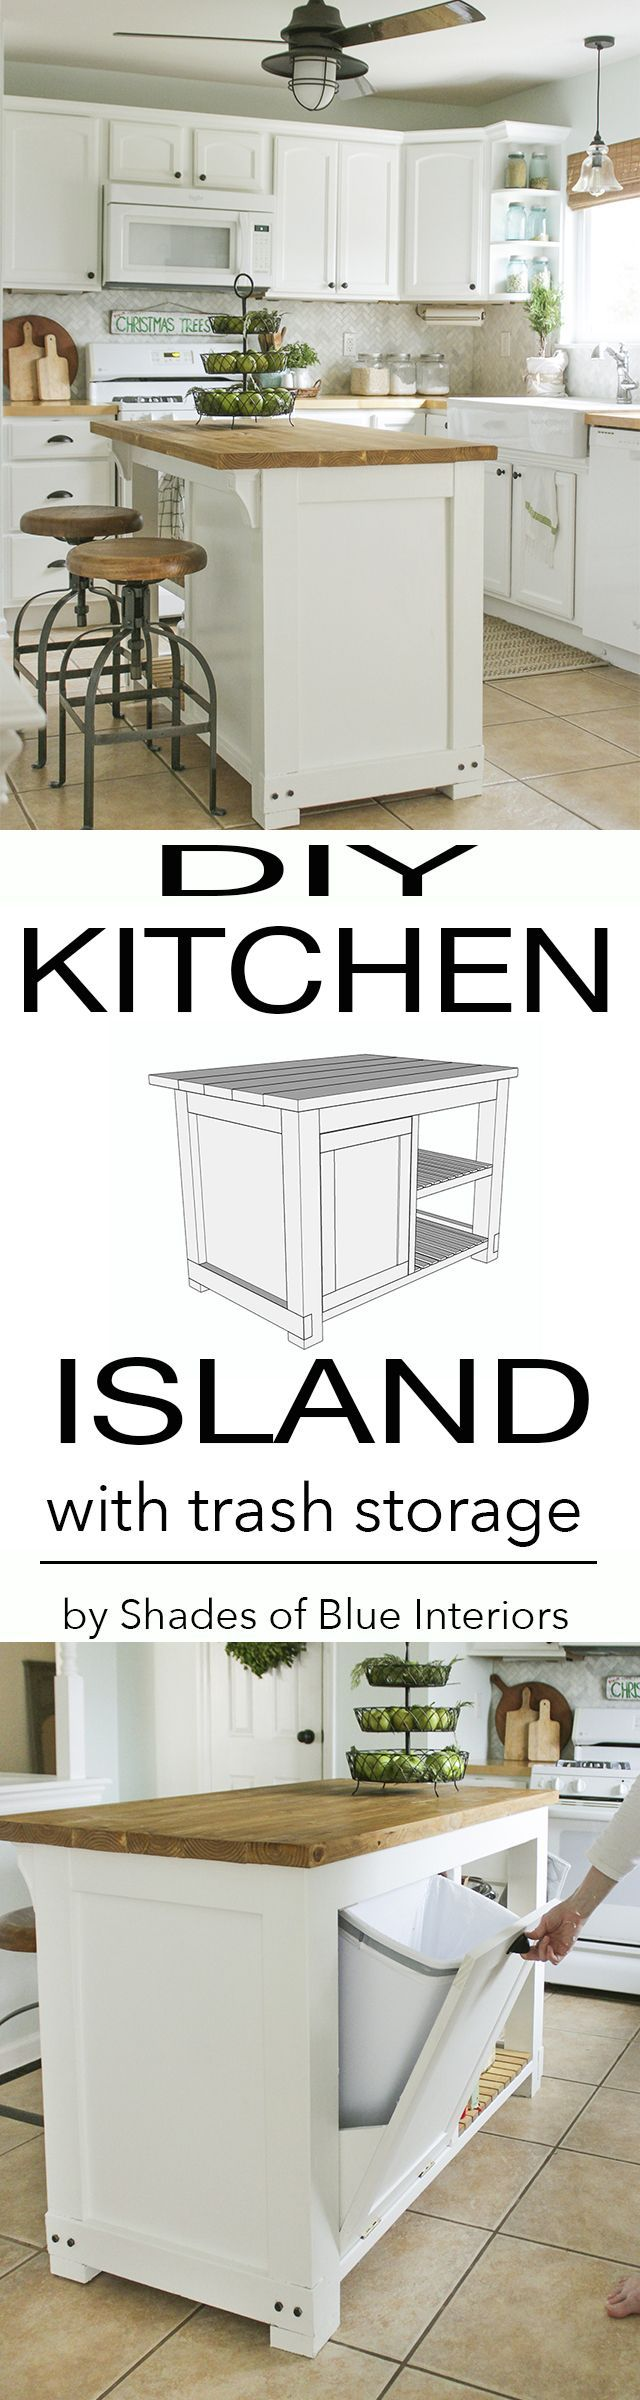 DIY KITCHEN ISLAND with trash storage and free downloadable build plans!